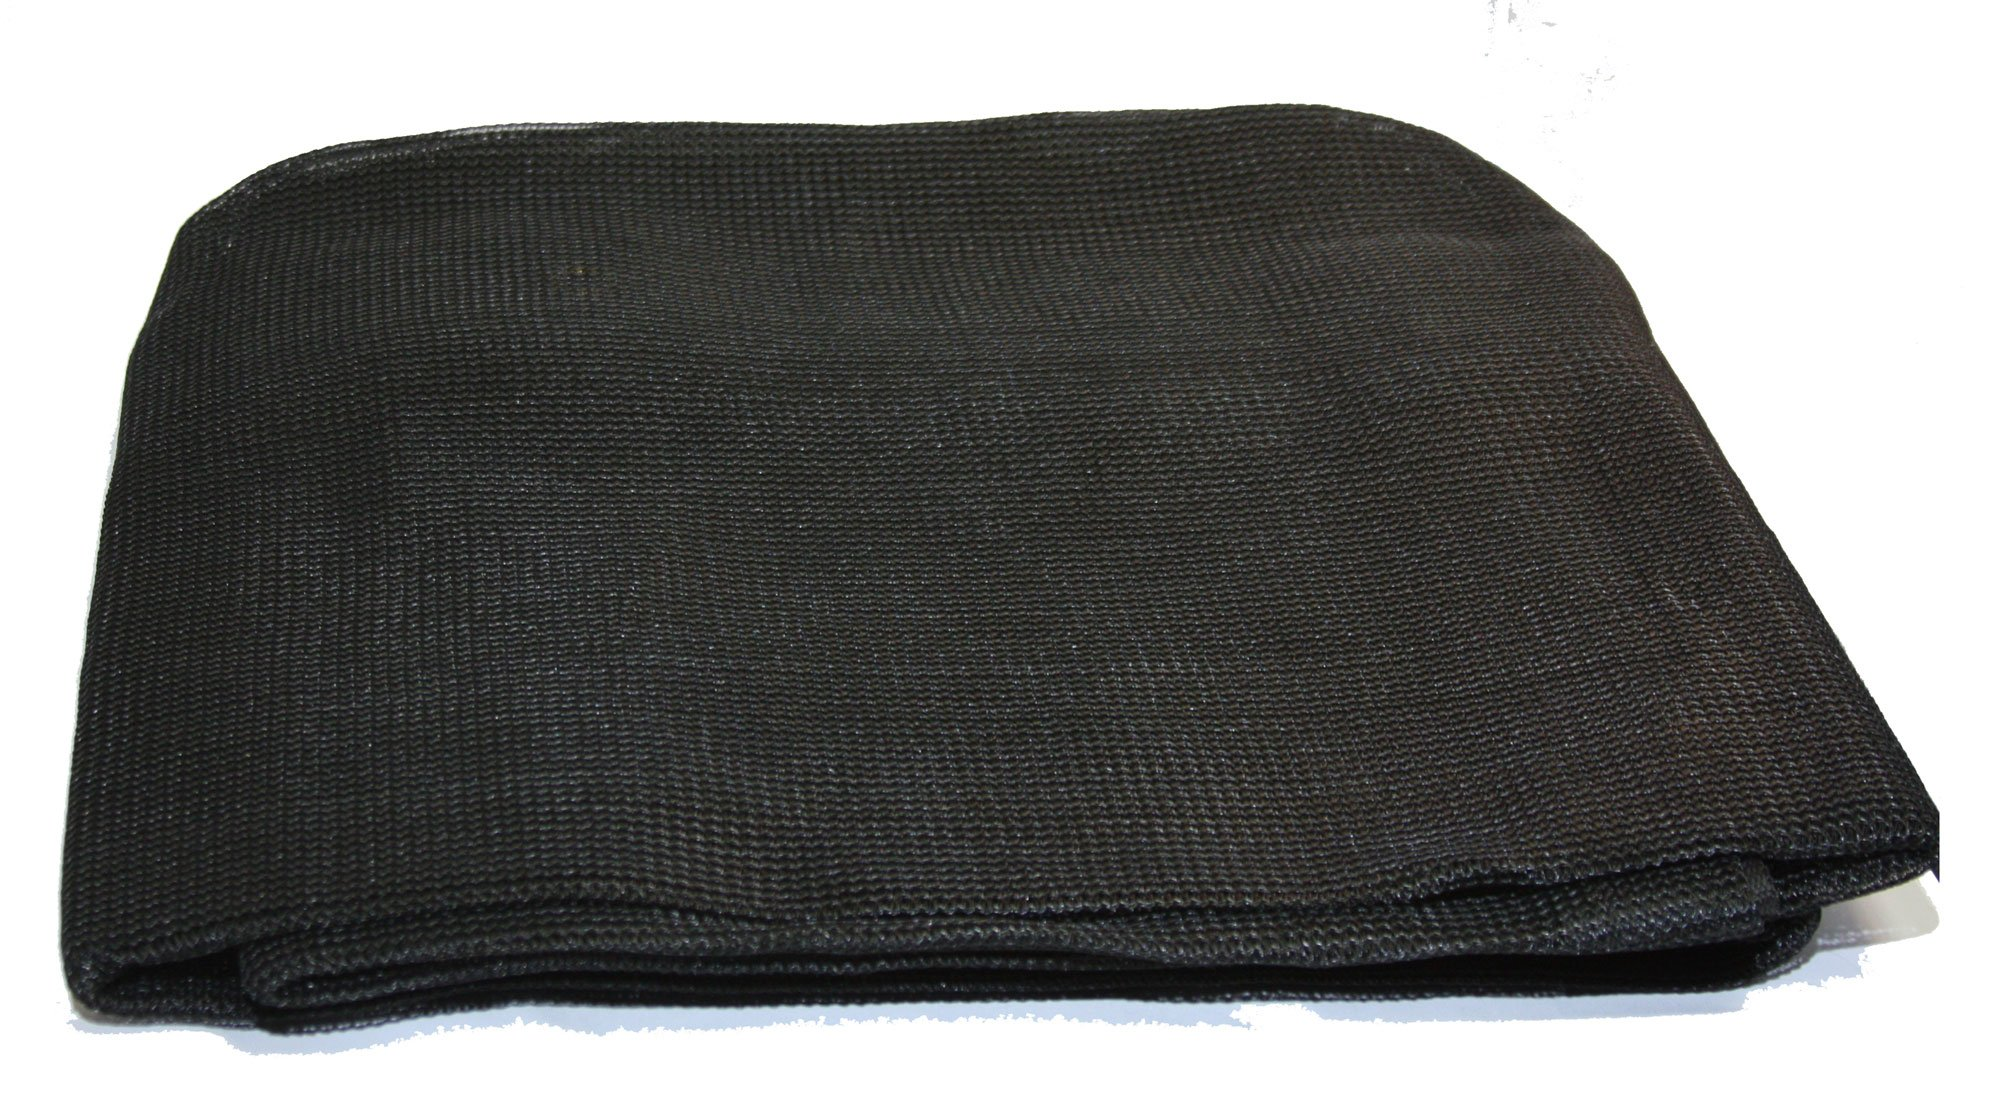 16' x 20' Black 70% Shade Mesh Tarps with Grommets by Mytee